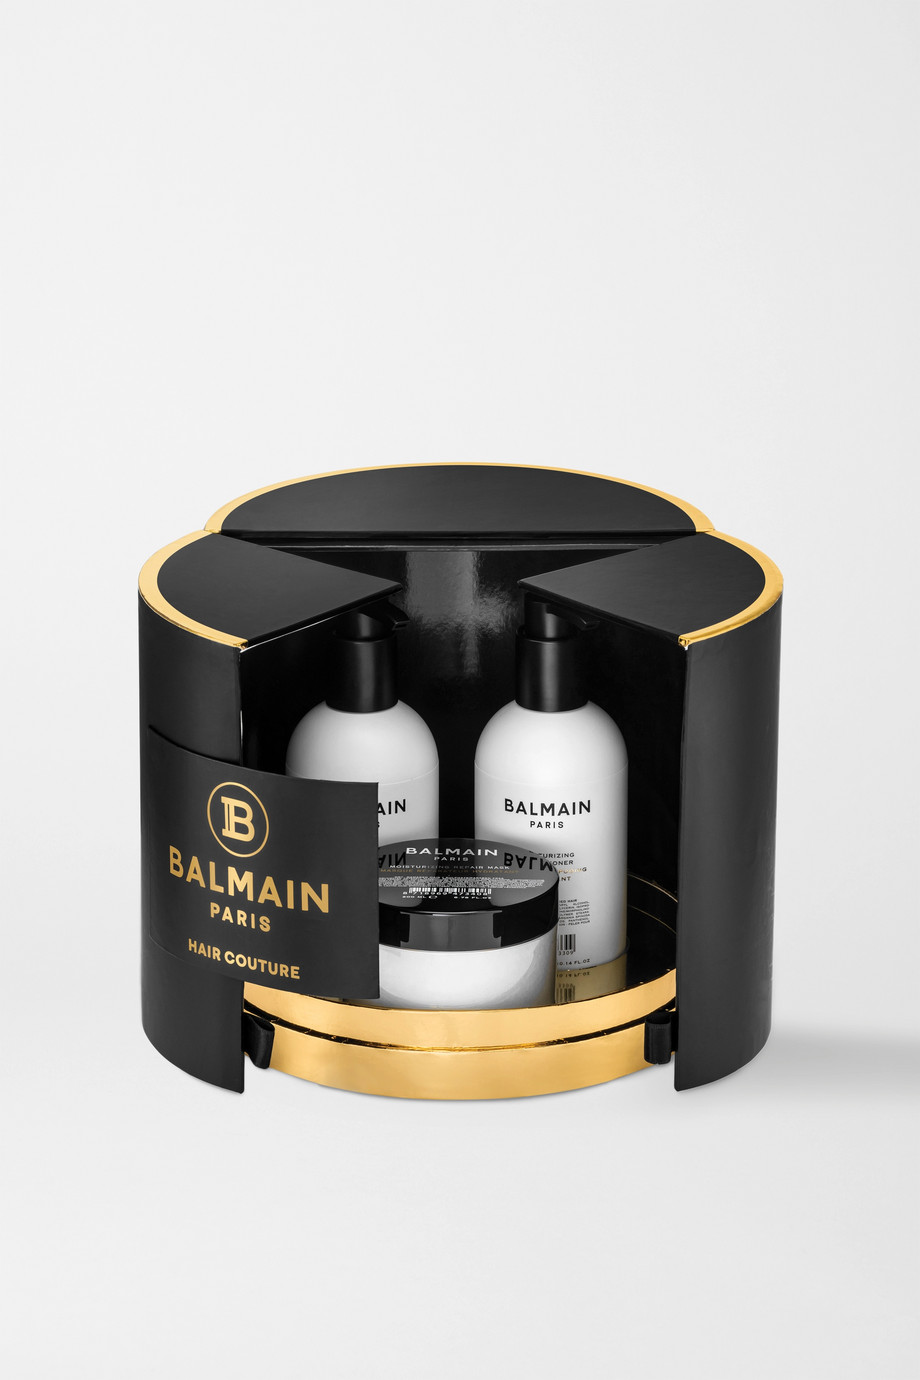 Balmain Paris Hair Couture Moisturizing Care Set – Haarpflegeset